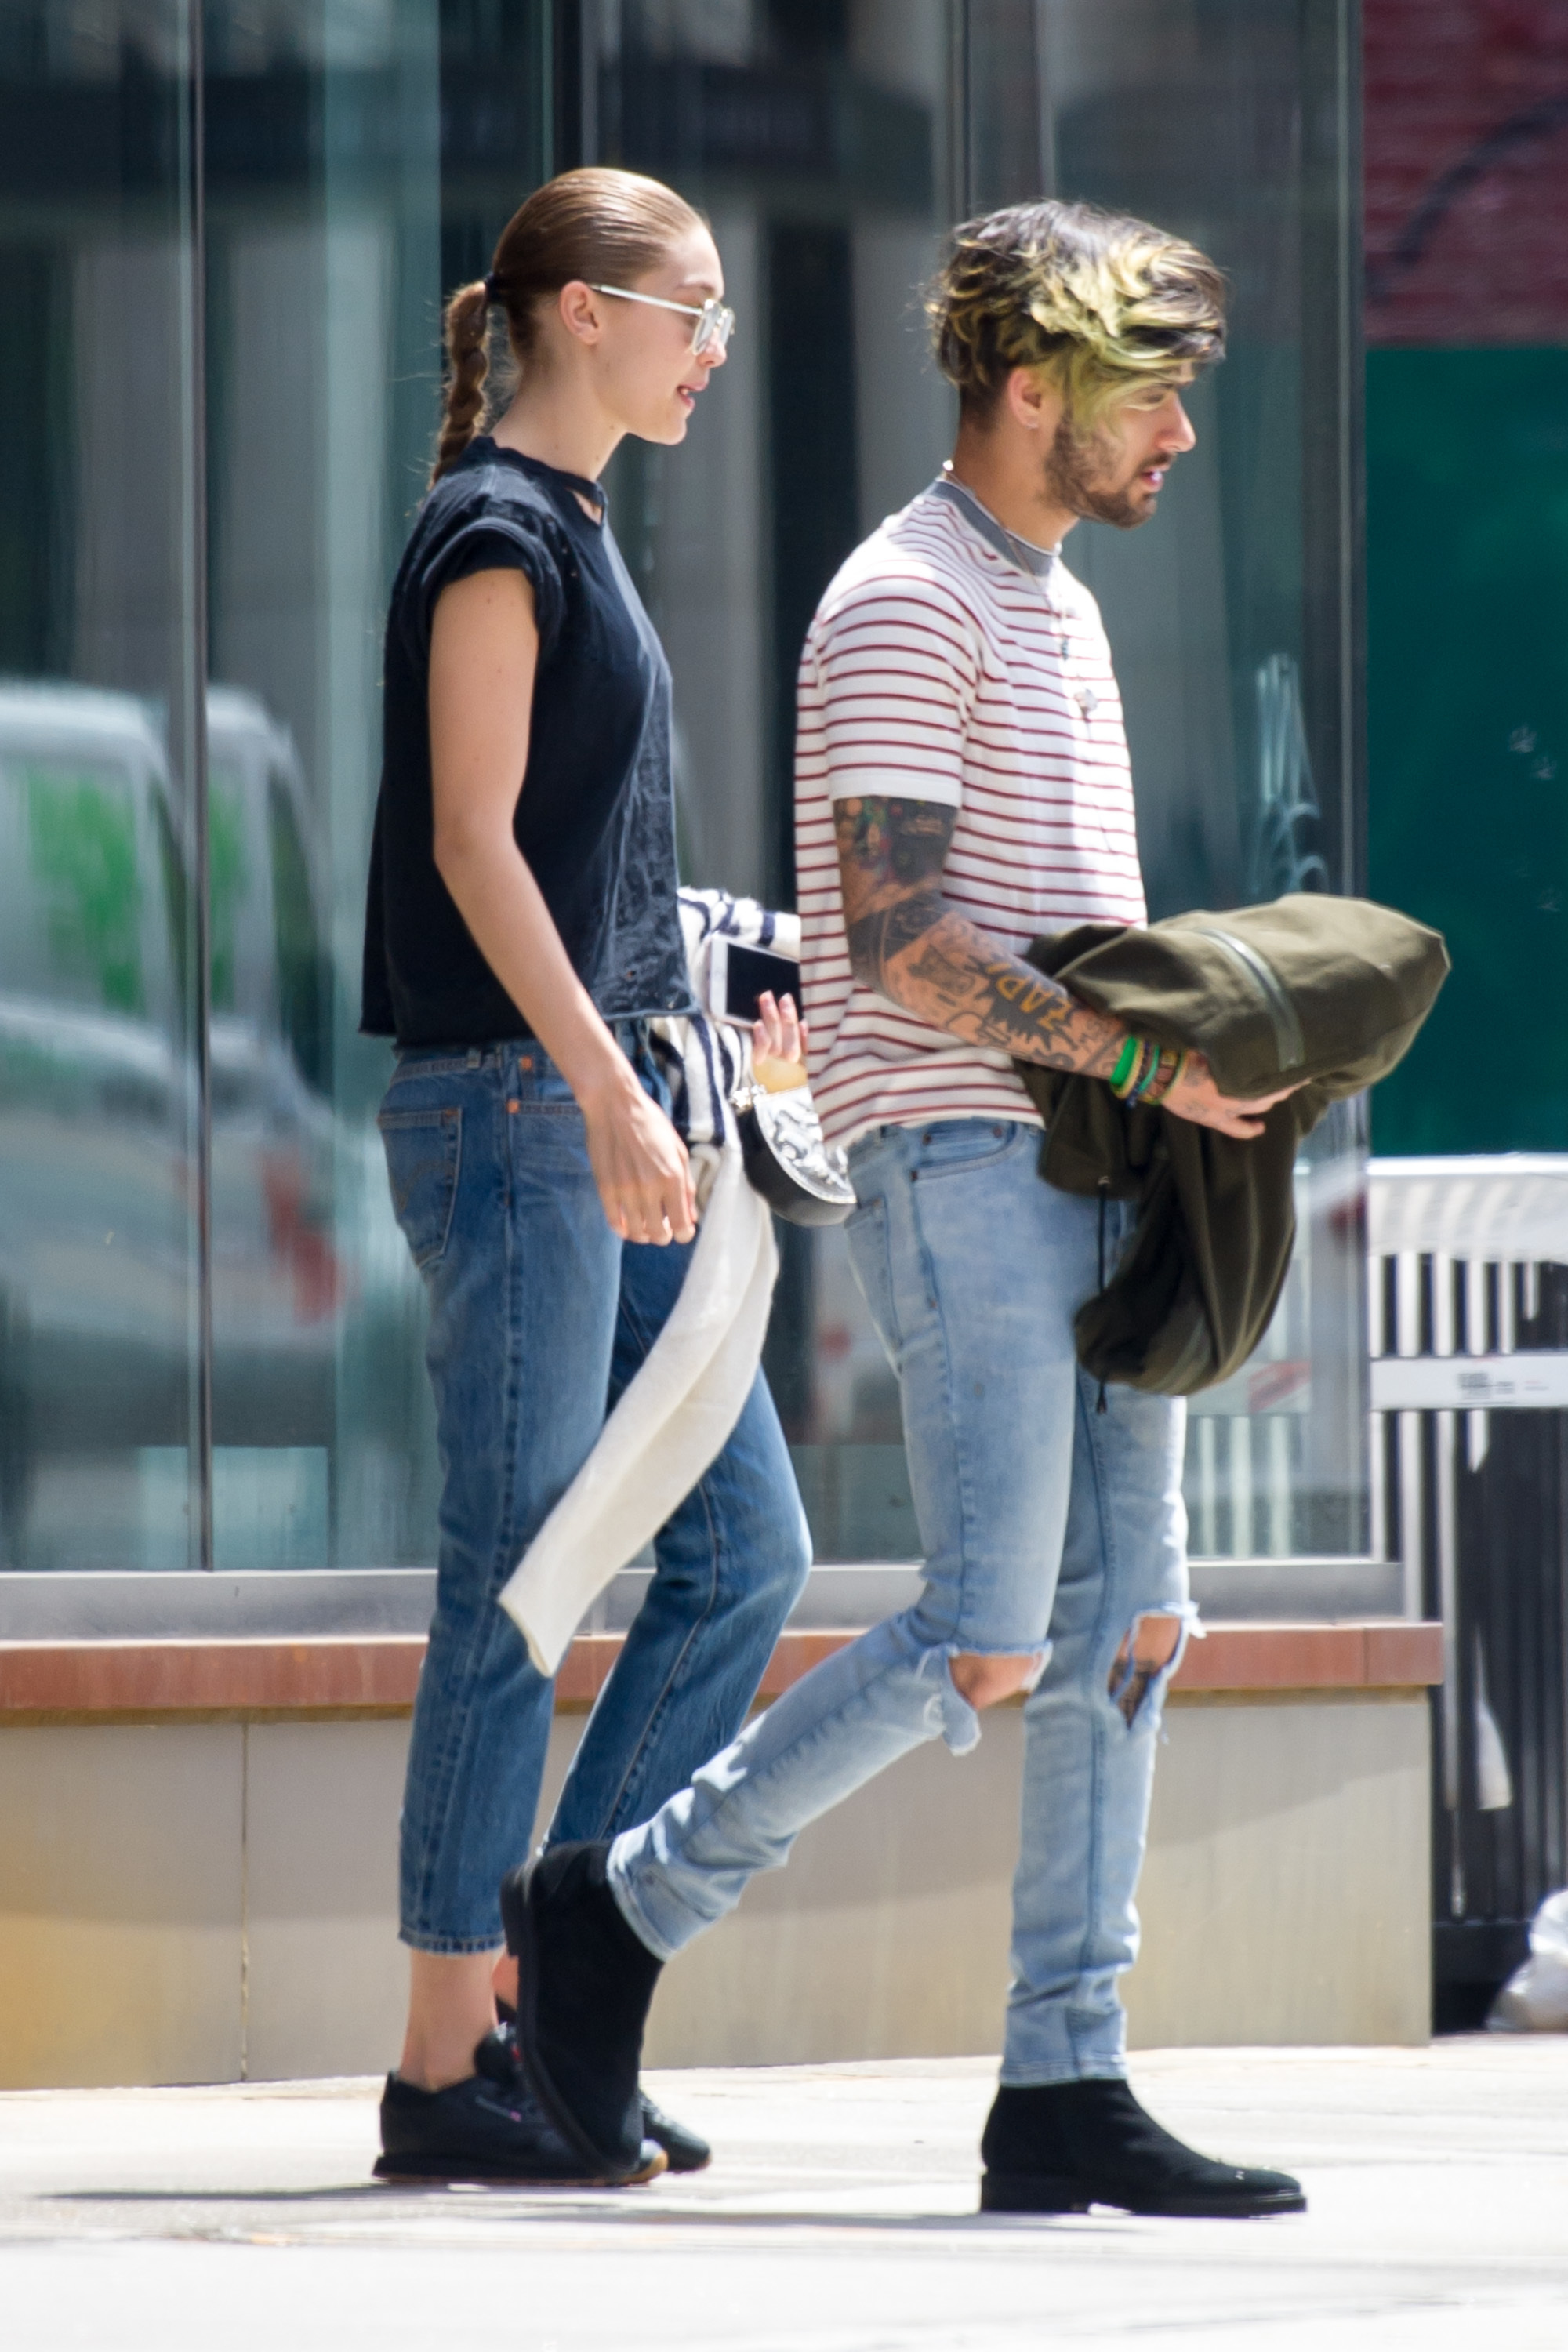 Gigi Hadid and Zayn Malik were seen out and about in New York City on May 28, 2017.